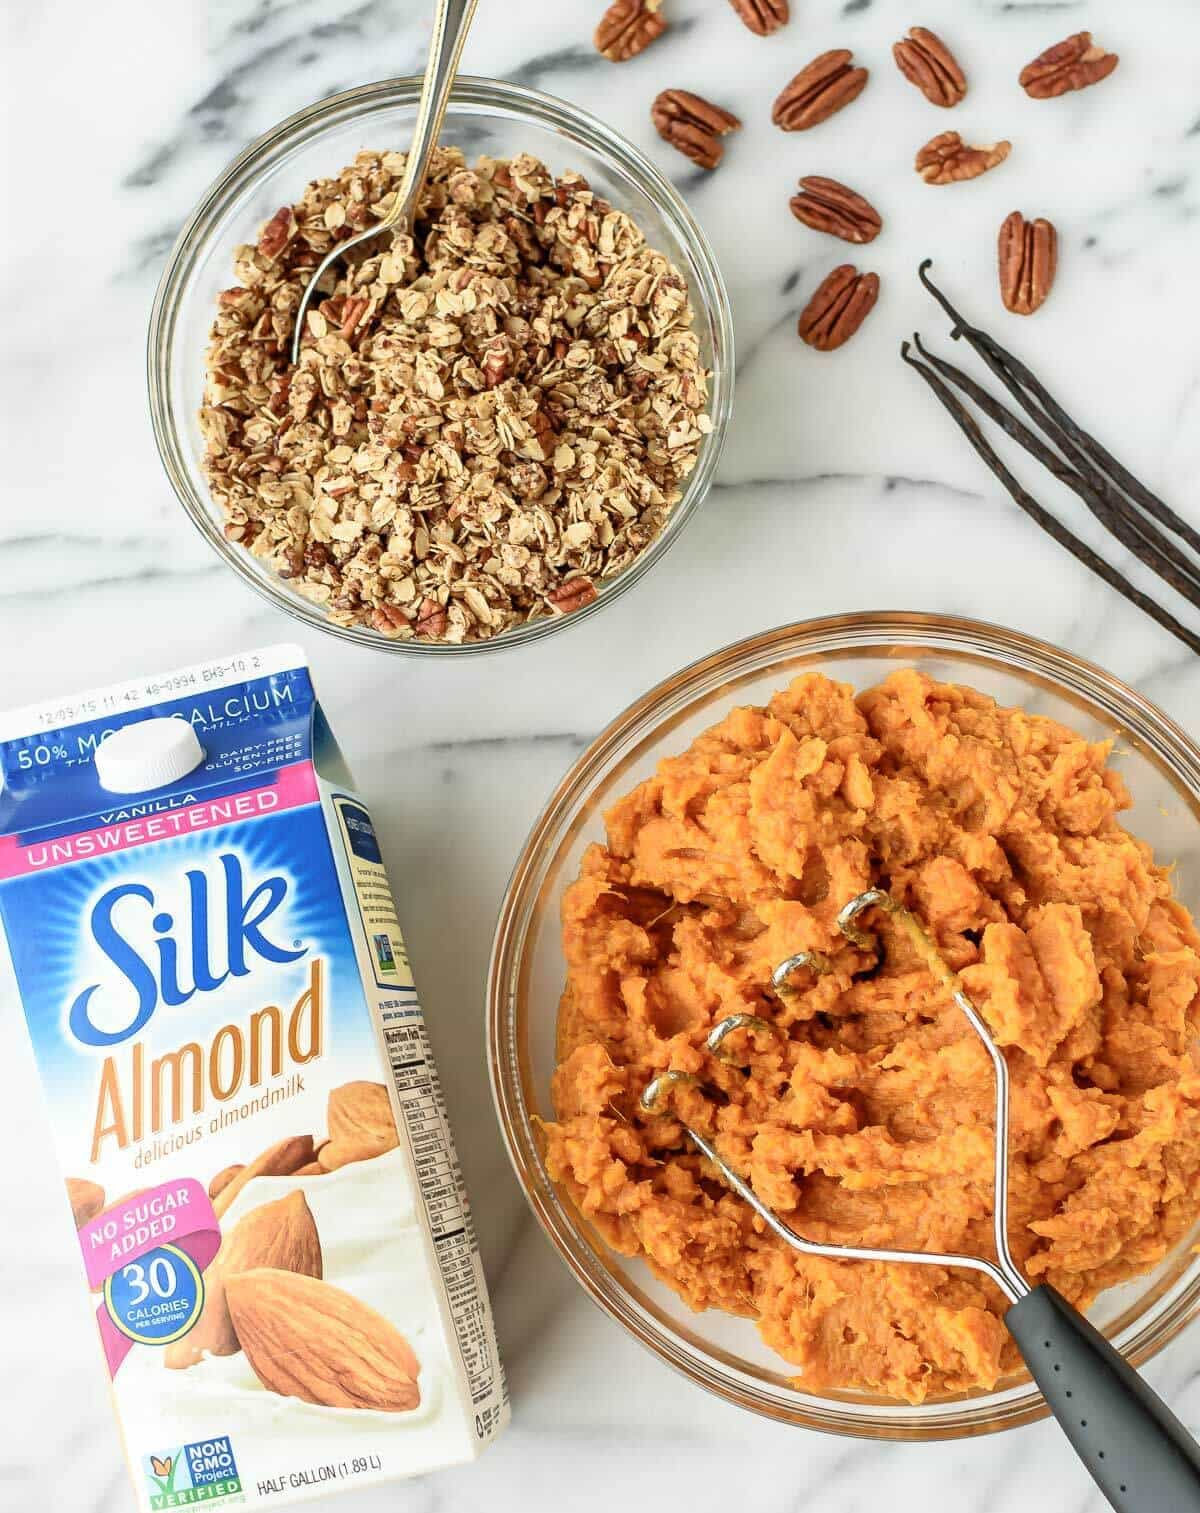 Healthy Sweet Potato Casserole made with coconut oil, vanilla beans, and maple syrup. Vegan, gluten free, and dairy free, this dish is perfect for guests with dietary restrictions, but everyone else will love it too!